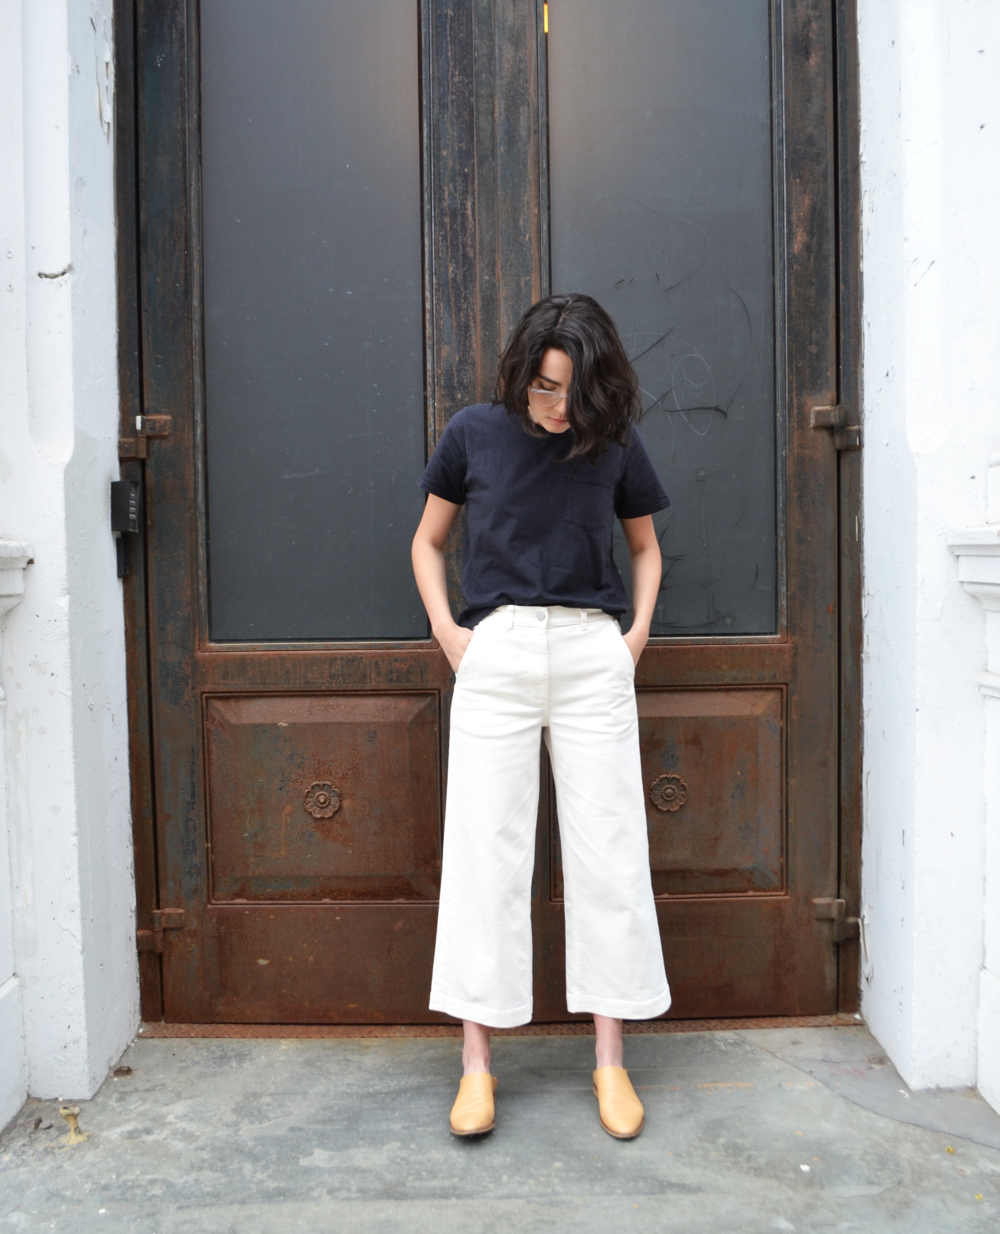 Everlane | The Wide Leg Crop Pant in Bone $68